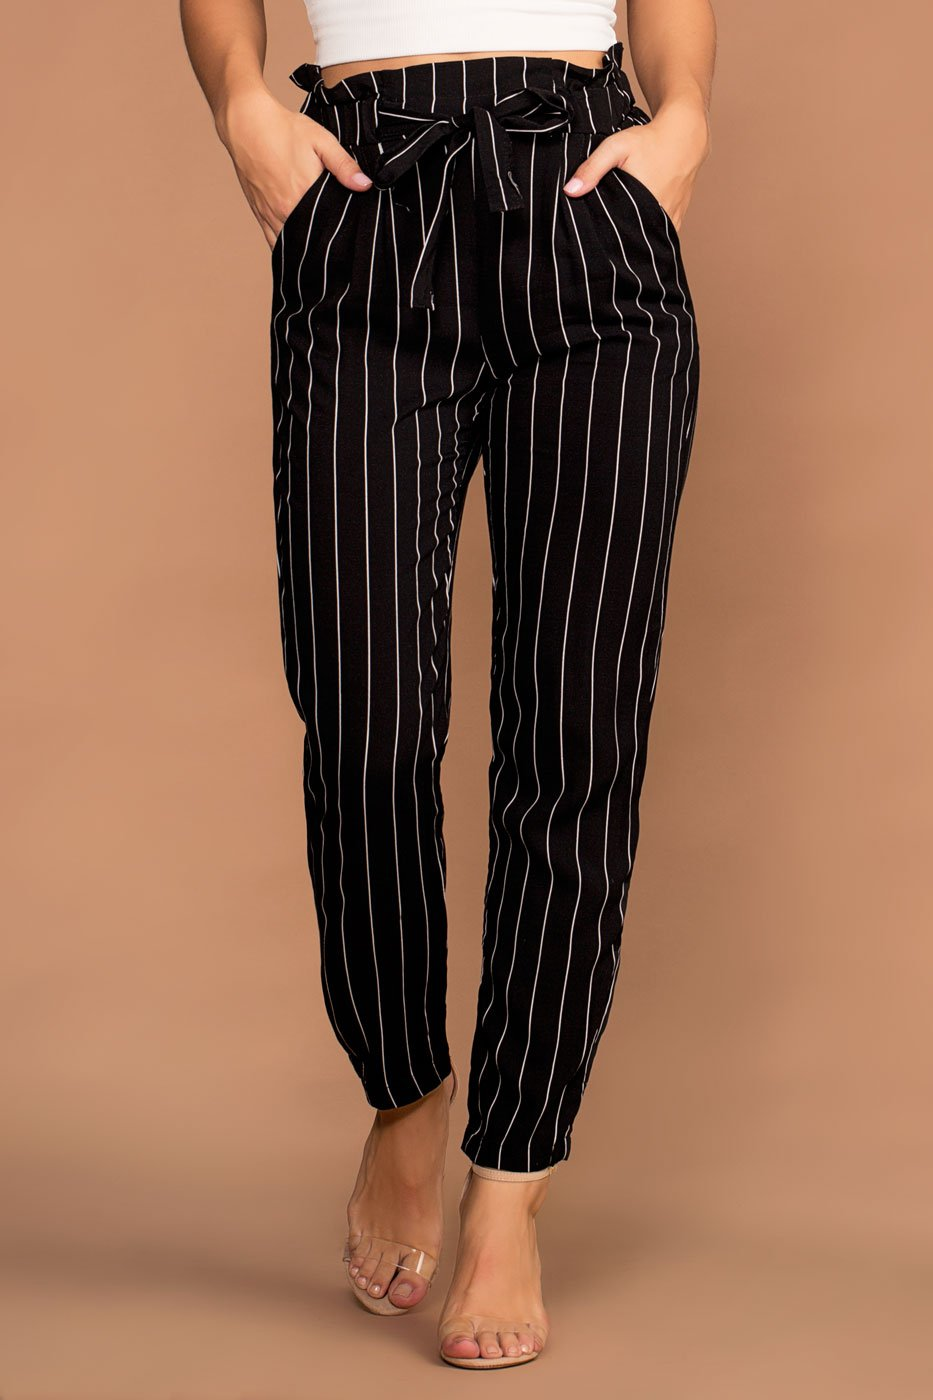 Priceless | Black and White | Stripe Pants | Paperbag Pants | Womens